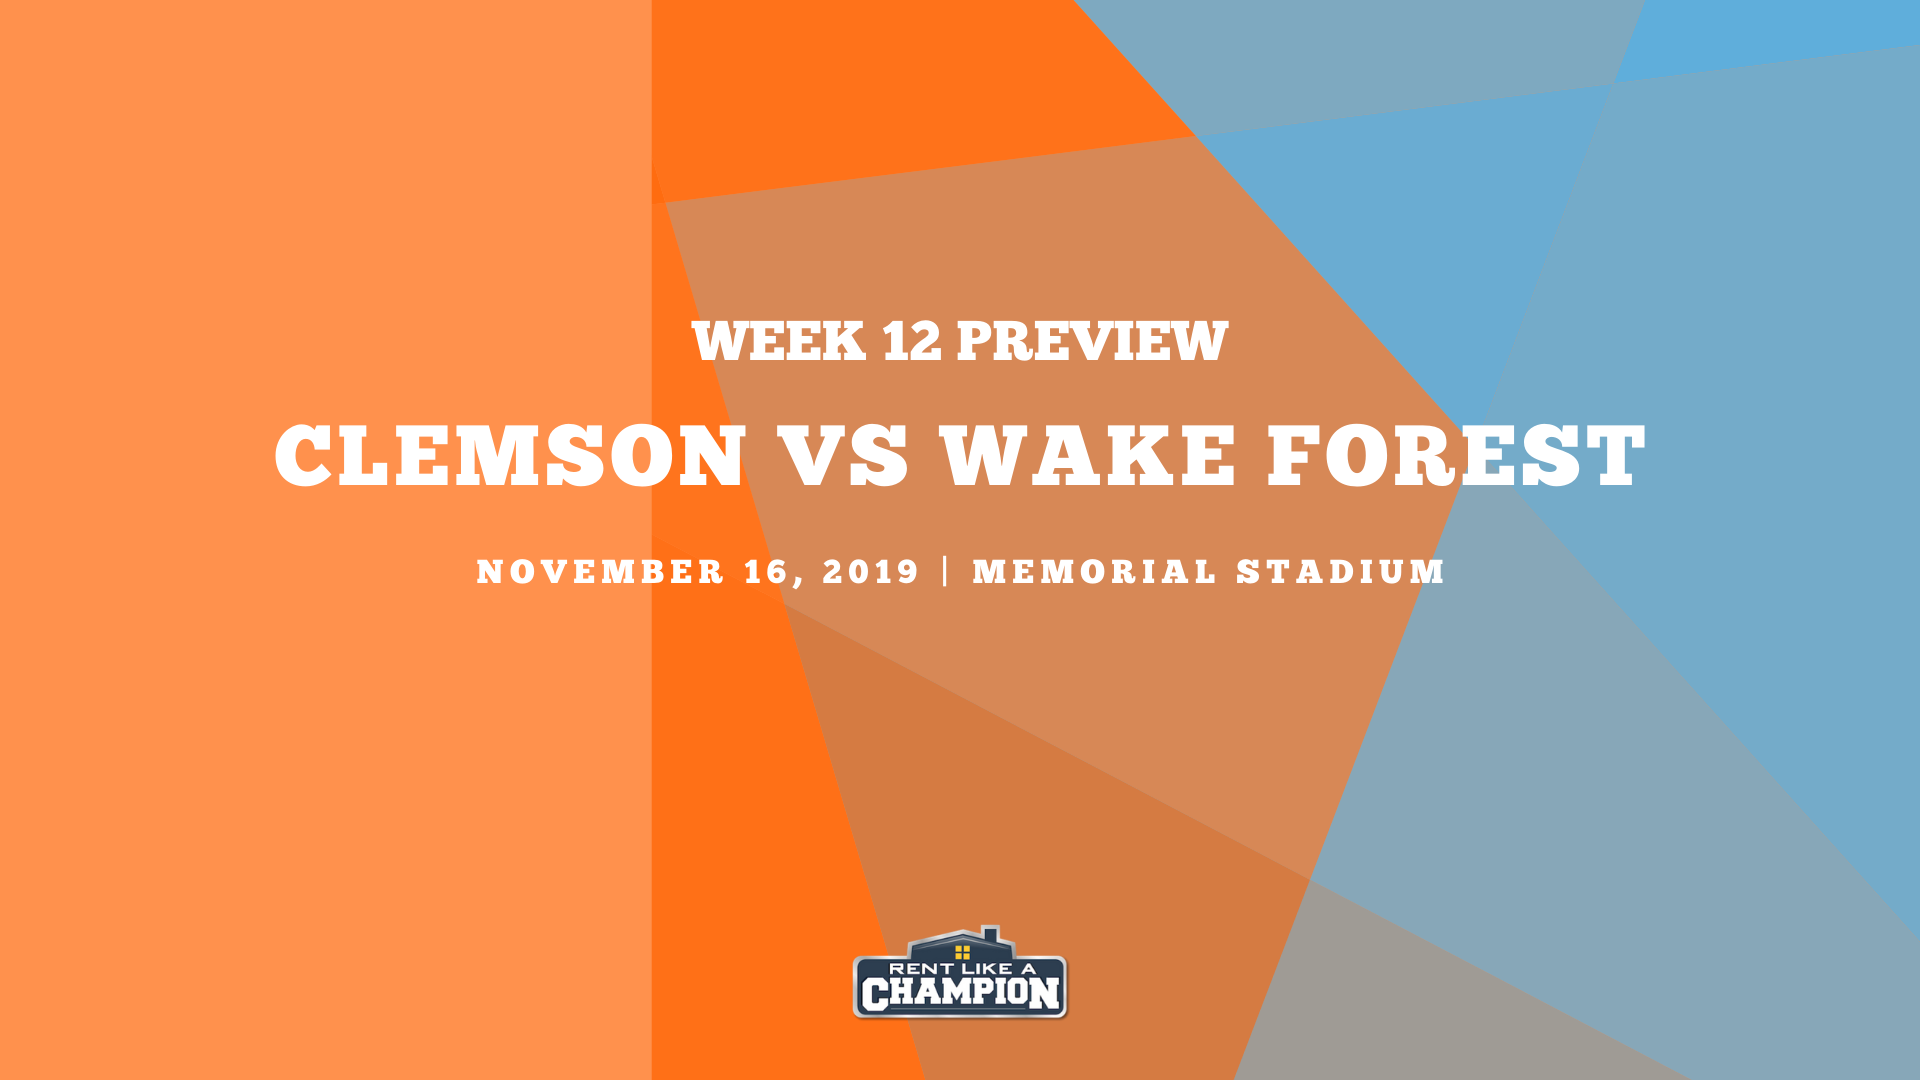 Clemson Game Preview Template (5)